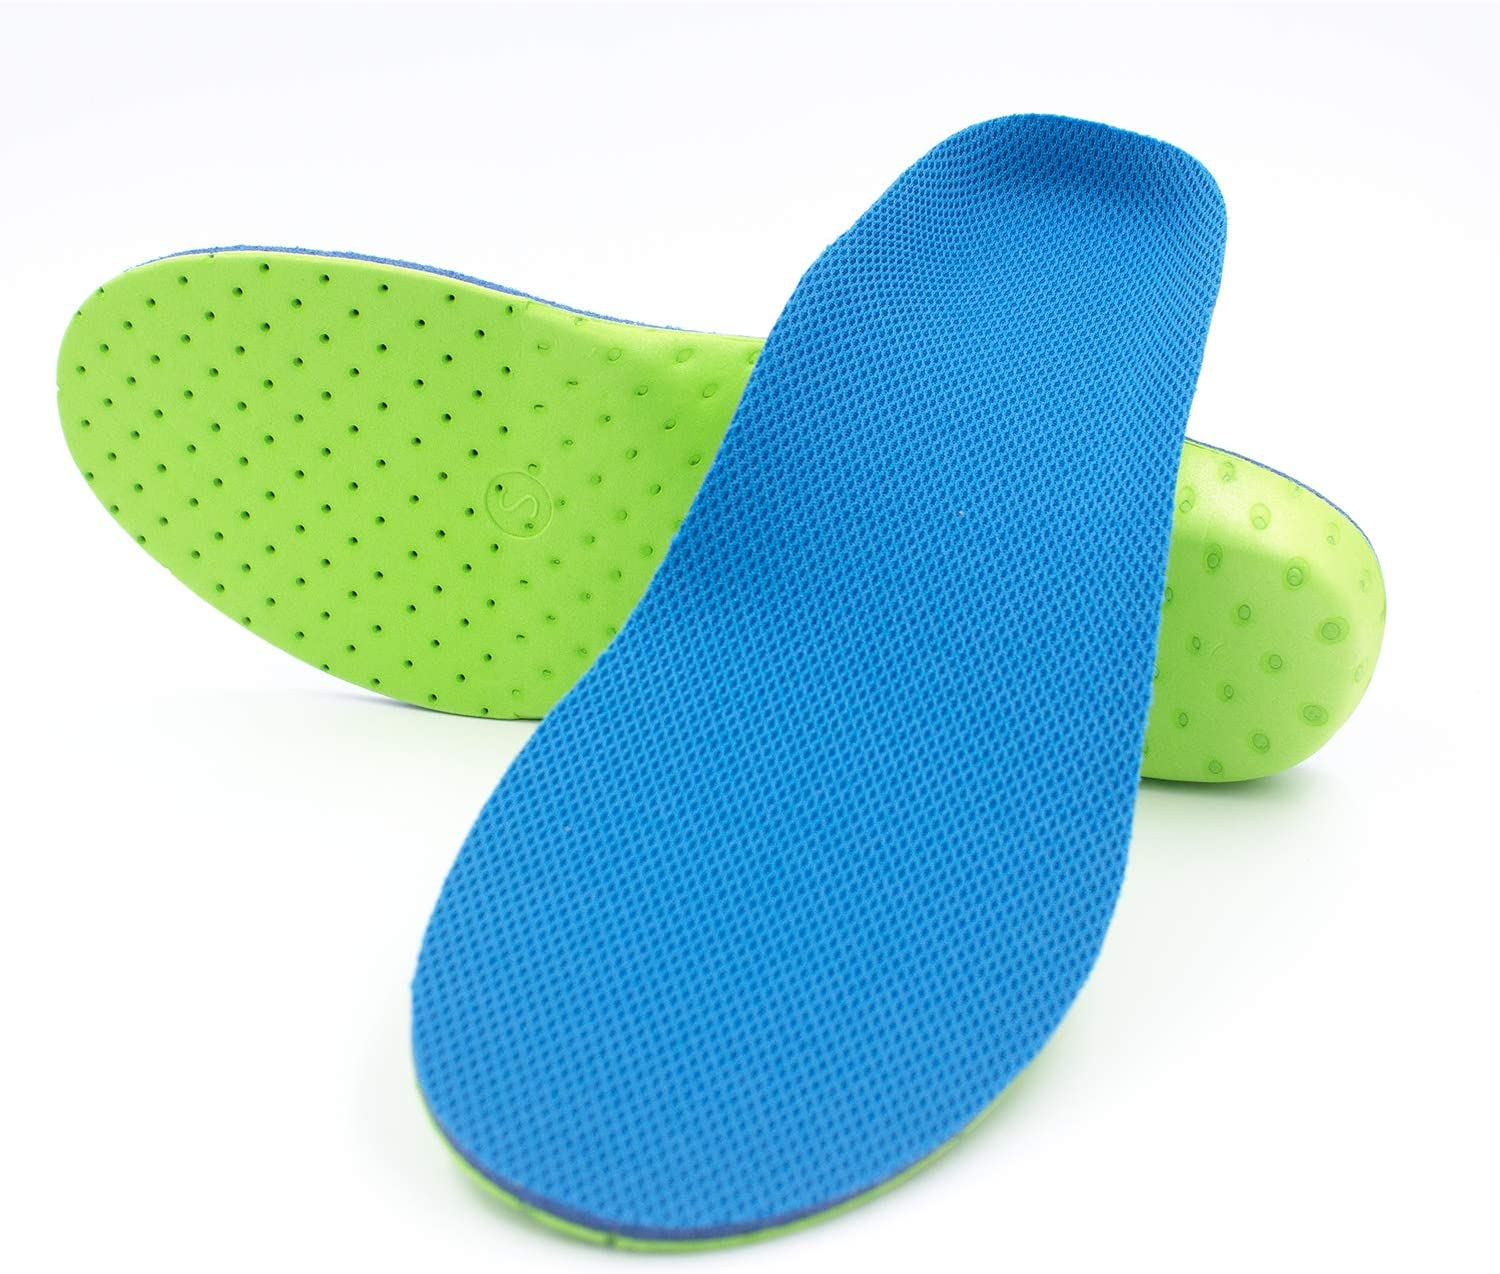 Sunoer Arch Support Shoe Insoles for Men & Women, Orthotic Inserts High-Arch Shock Absorption Insoles Cushioning for Plantar Fasciitis, Foot Pain, Running Sport (Men 12-14.5 / Women 14-16.5)